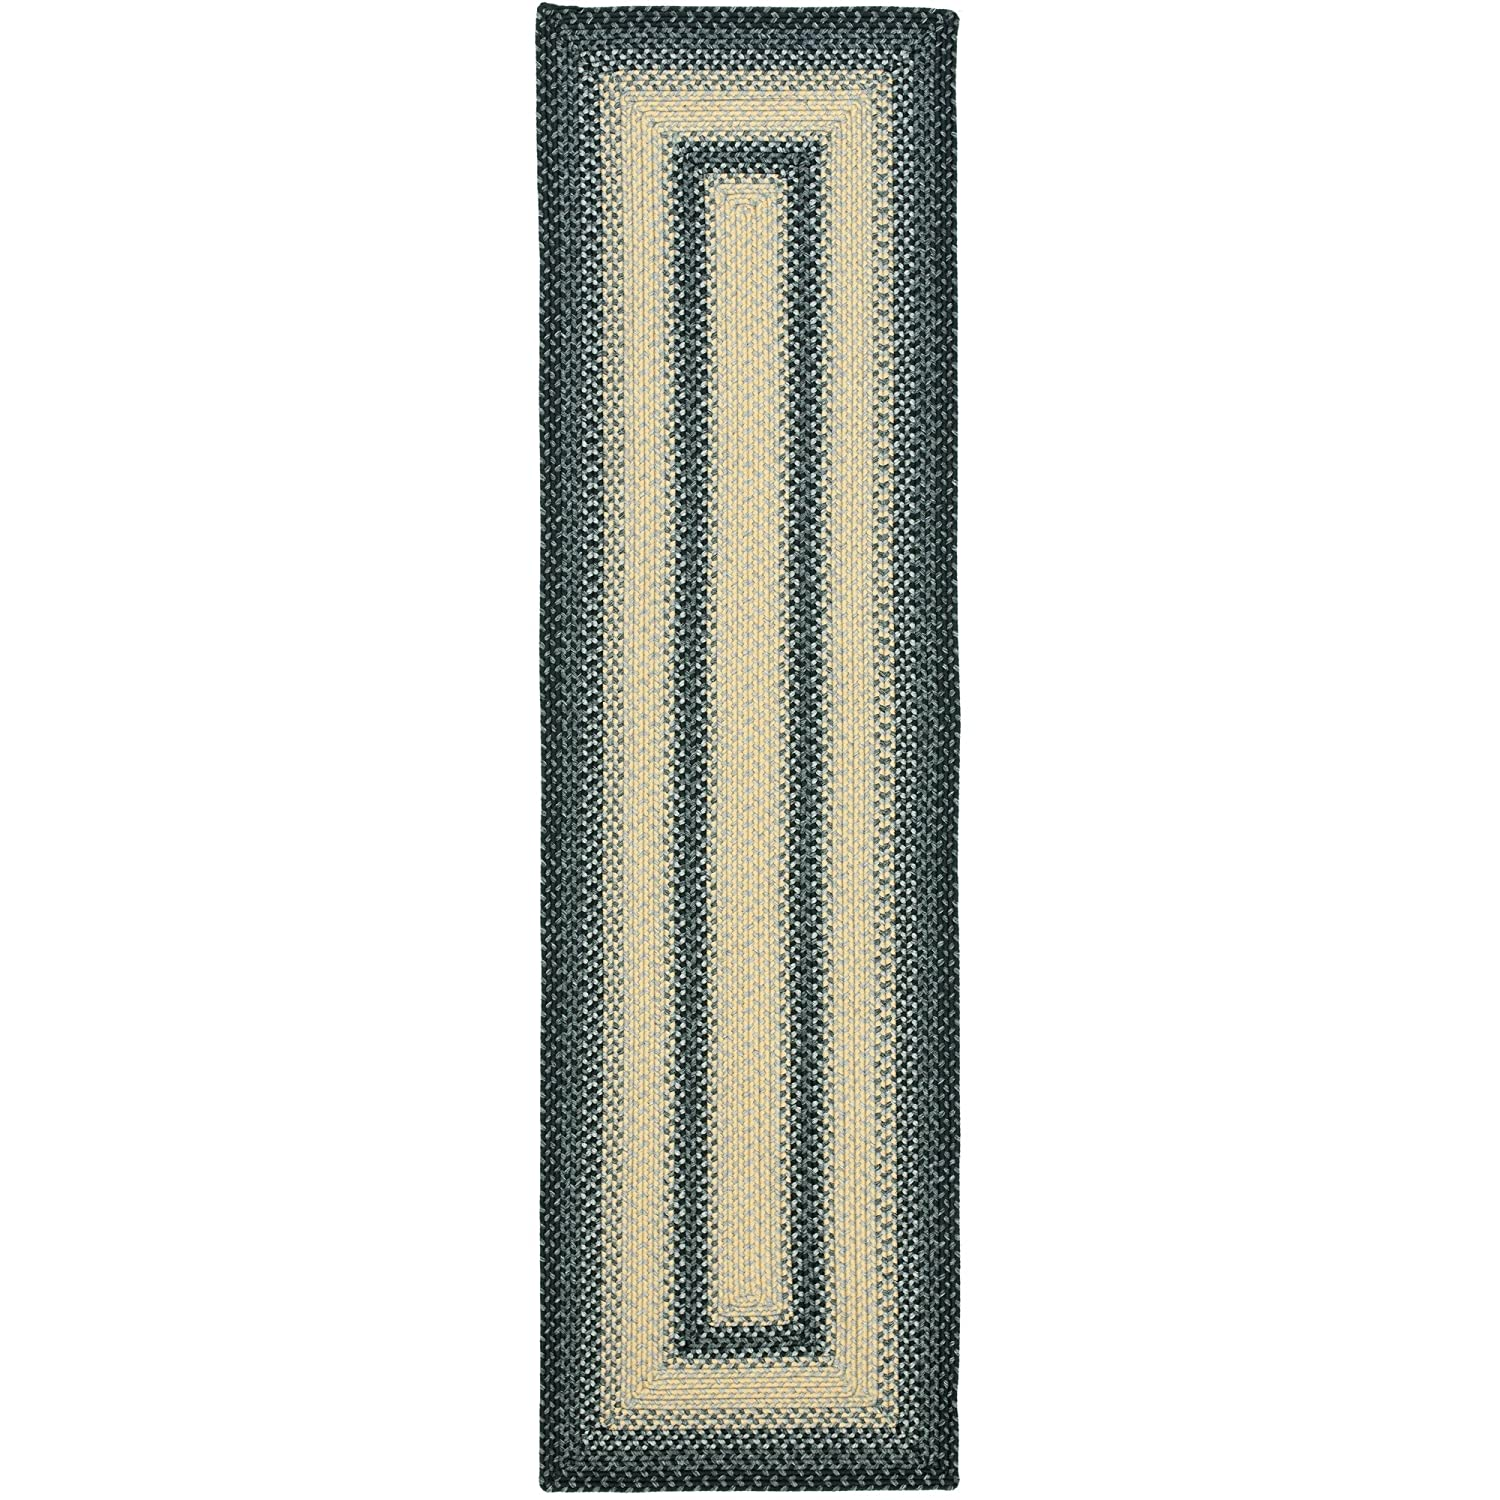 Safavieh Braided Collection BRD311A Hand Woven Black and Grey Runner, 2 feet 3 inches by 8 feet (2'3 x 8') BRD311A-28